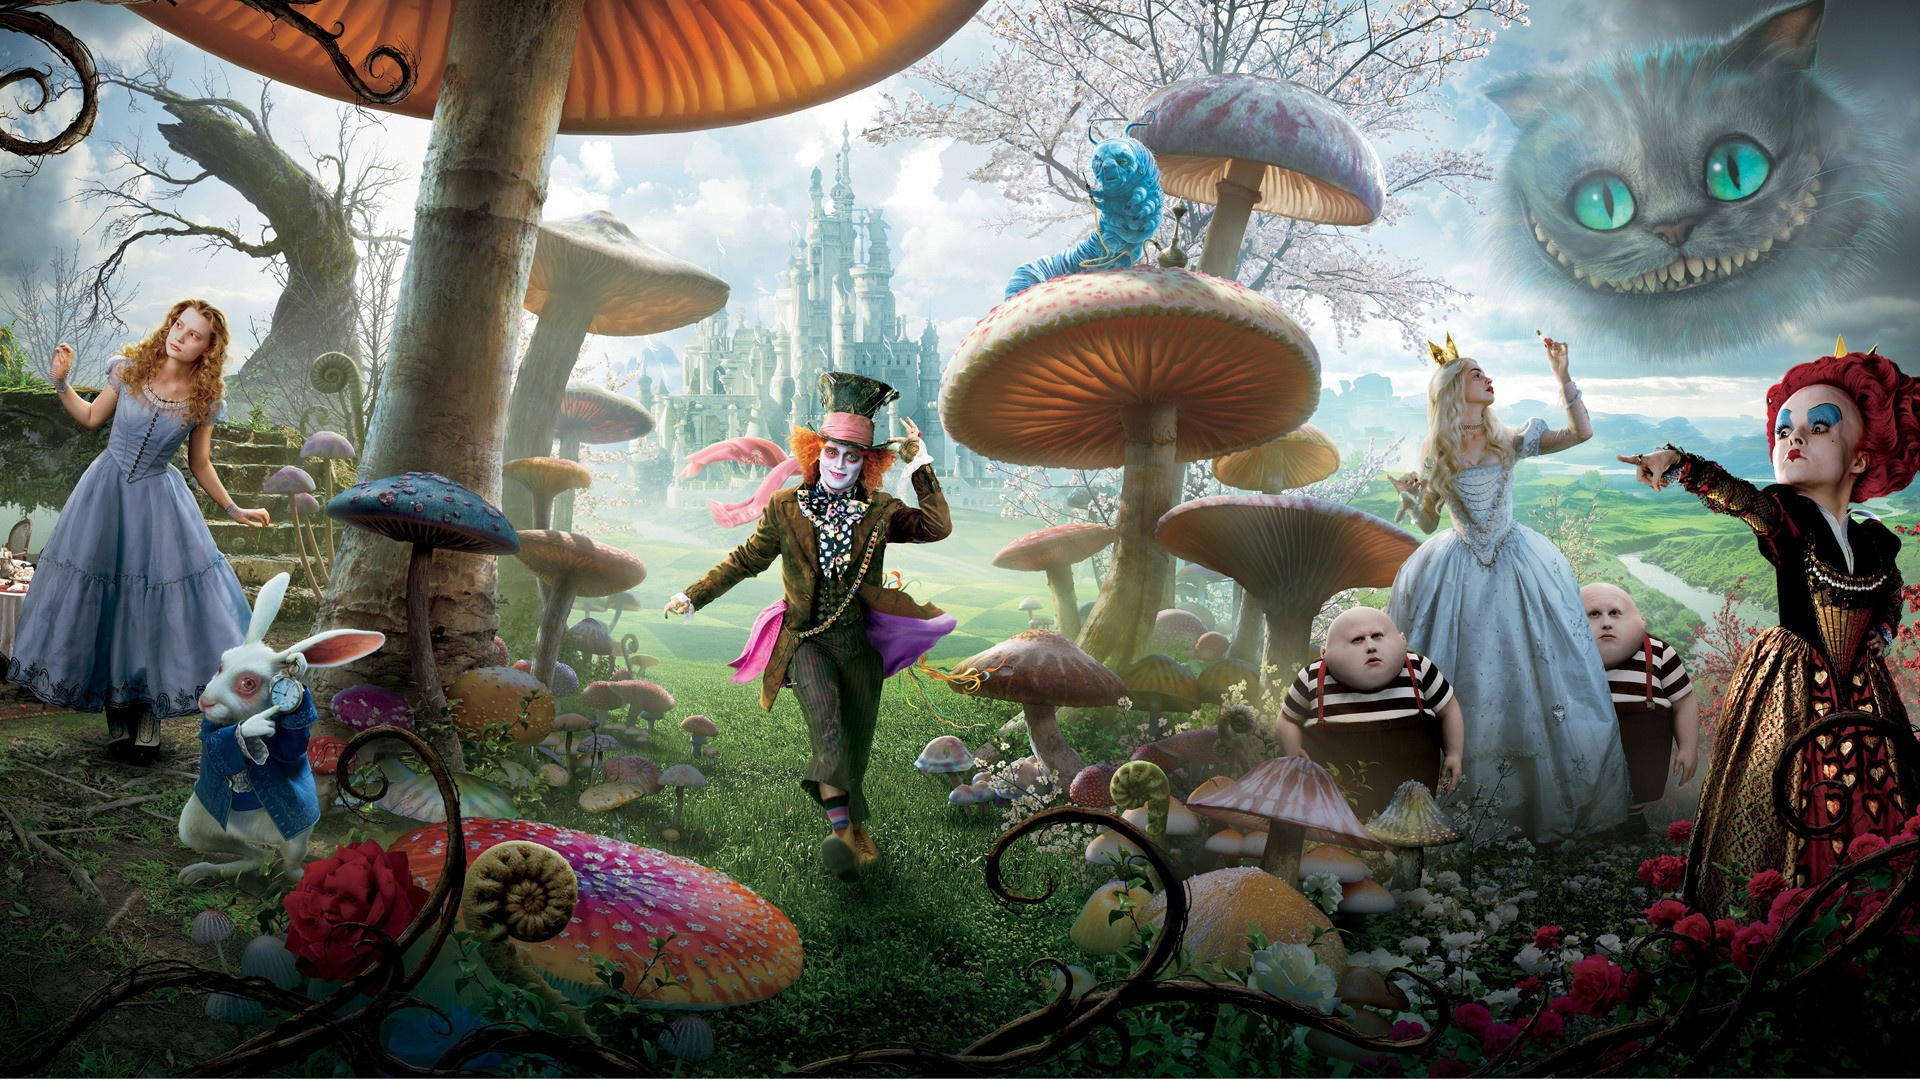 Alice in Wonderland Characters desktop wallpaper | WallpaperPixel